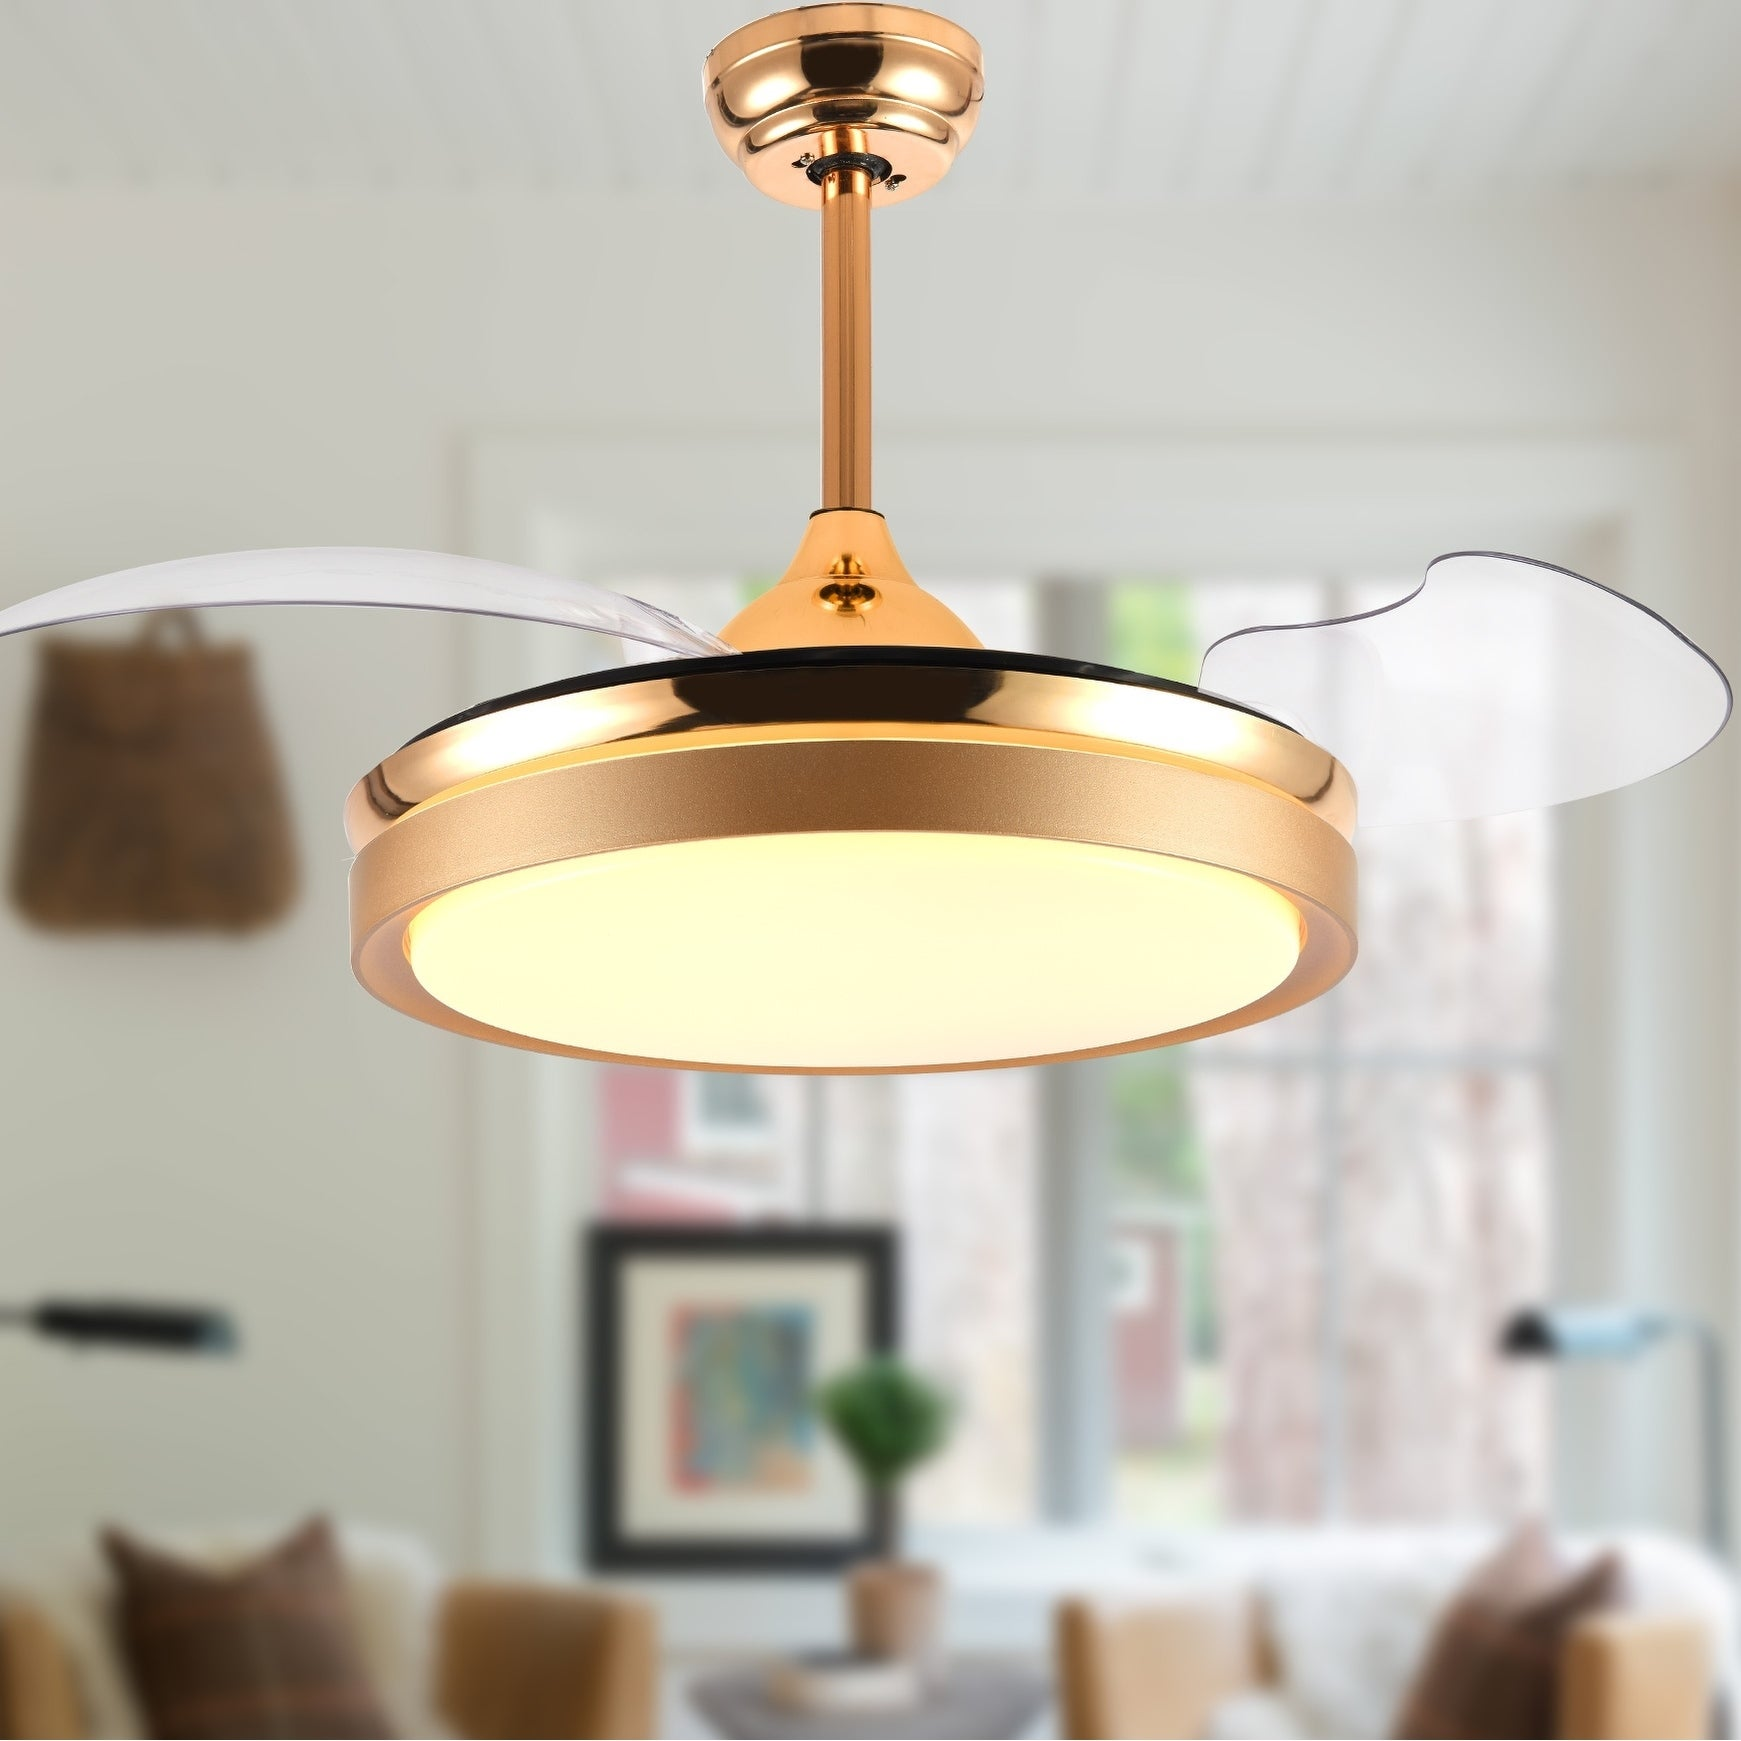 Shop Contemporary Bladeless Ceiling Fan With Light And Remote Retractable Blades 42 Inches On Sale Overstock 28174116